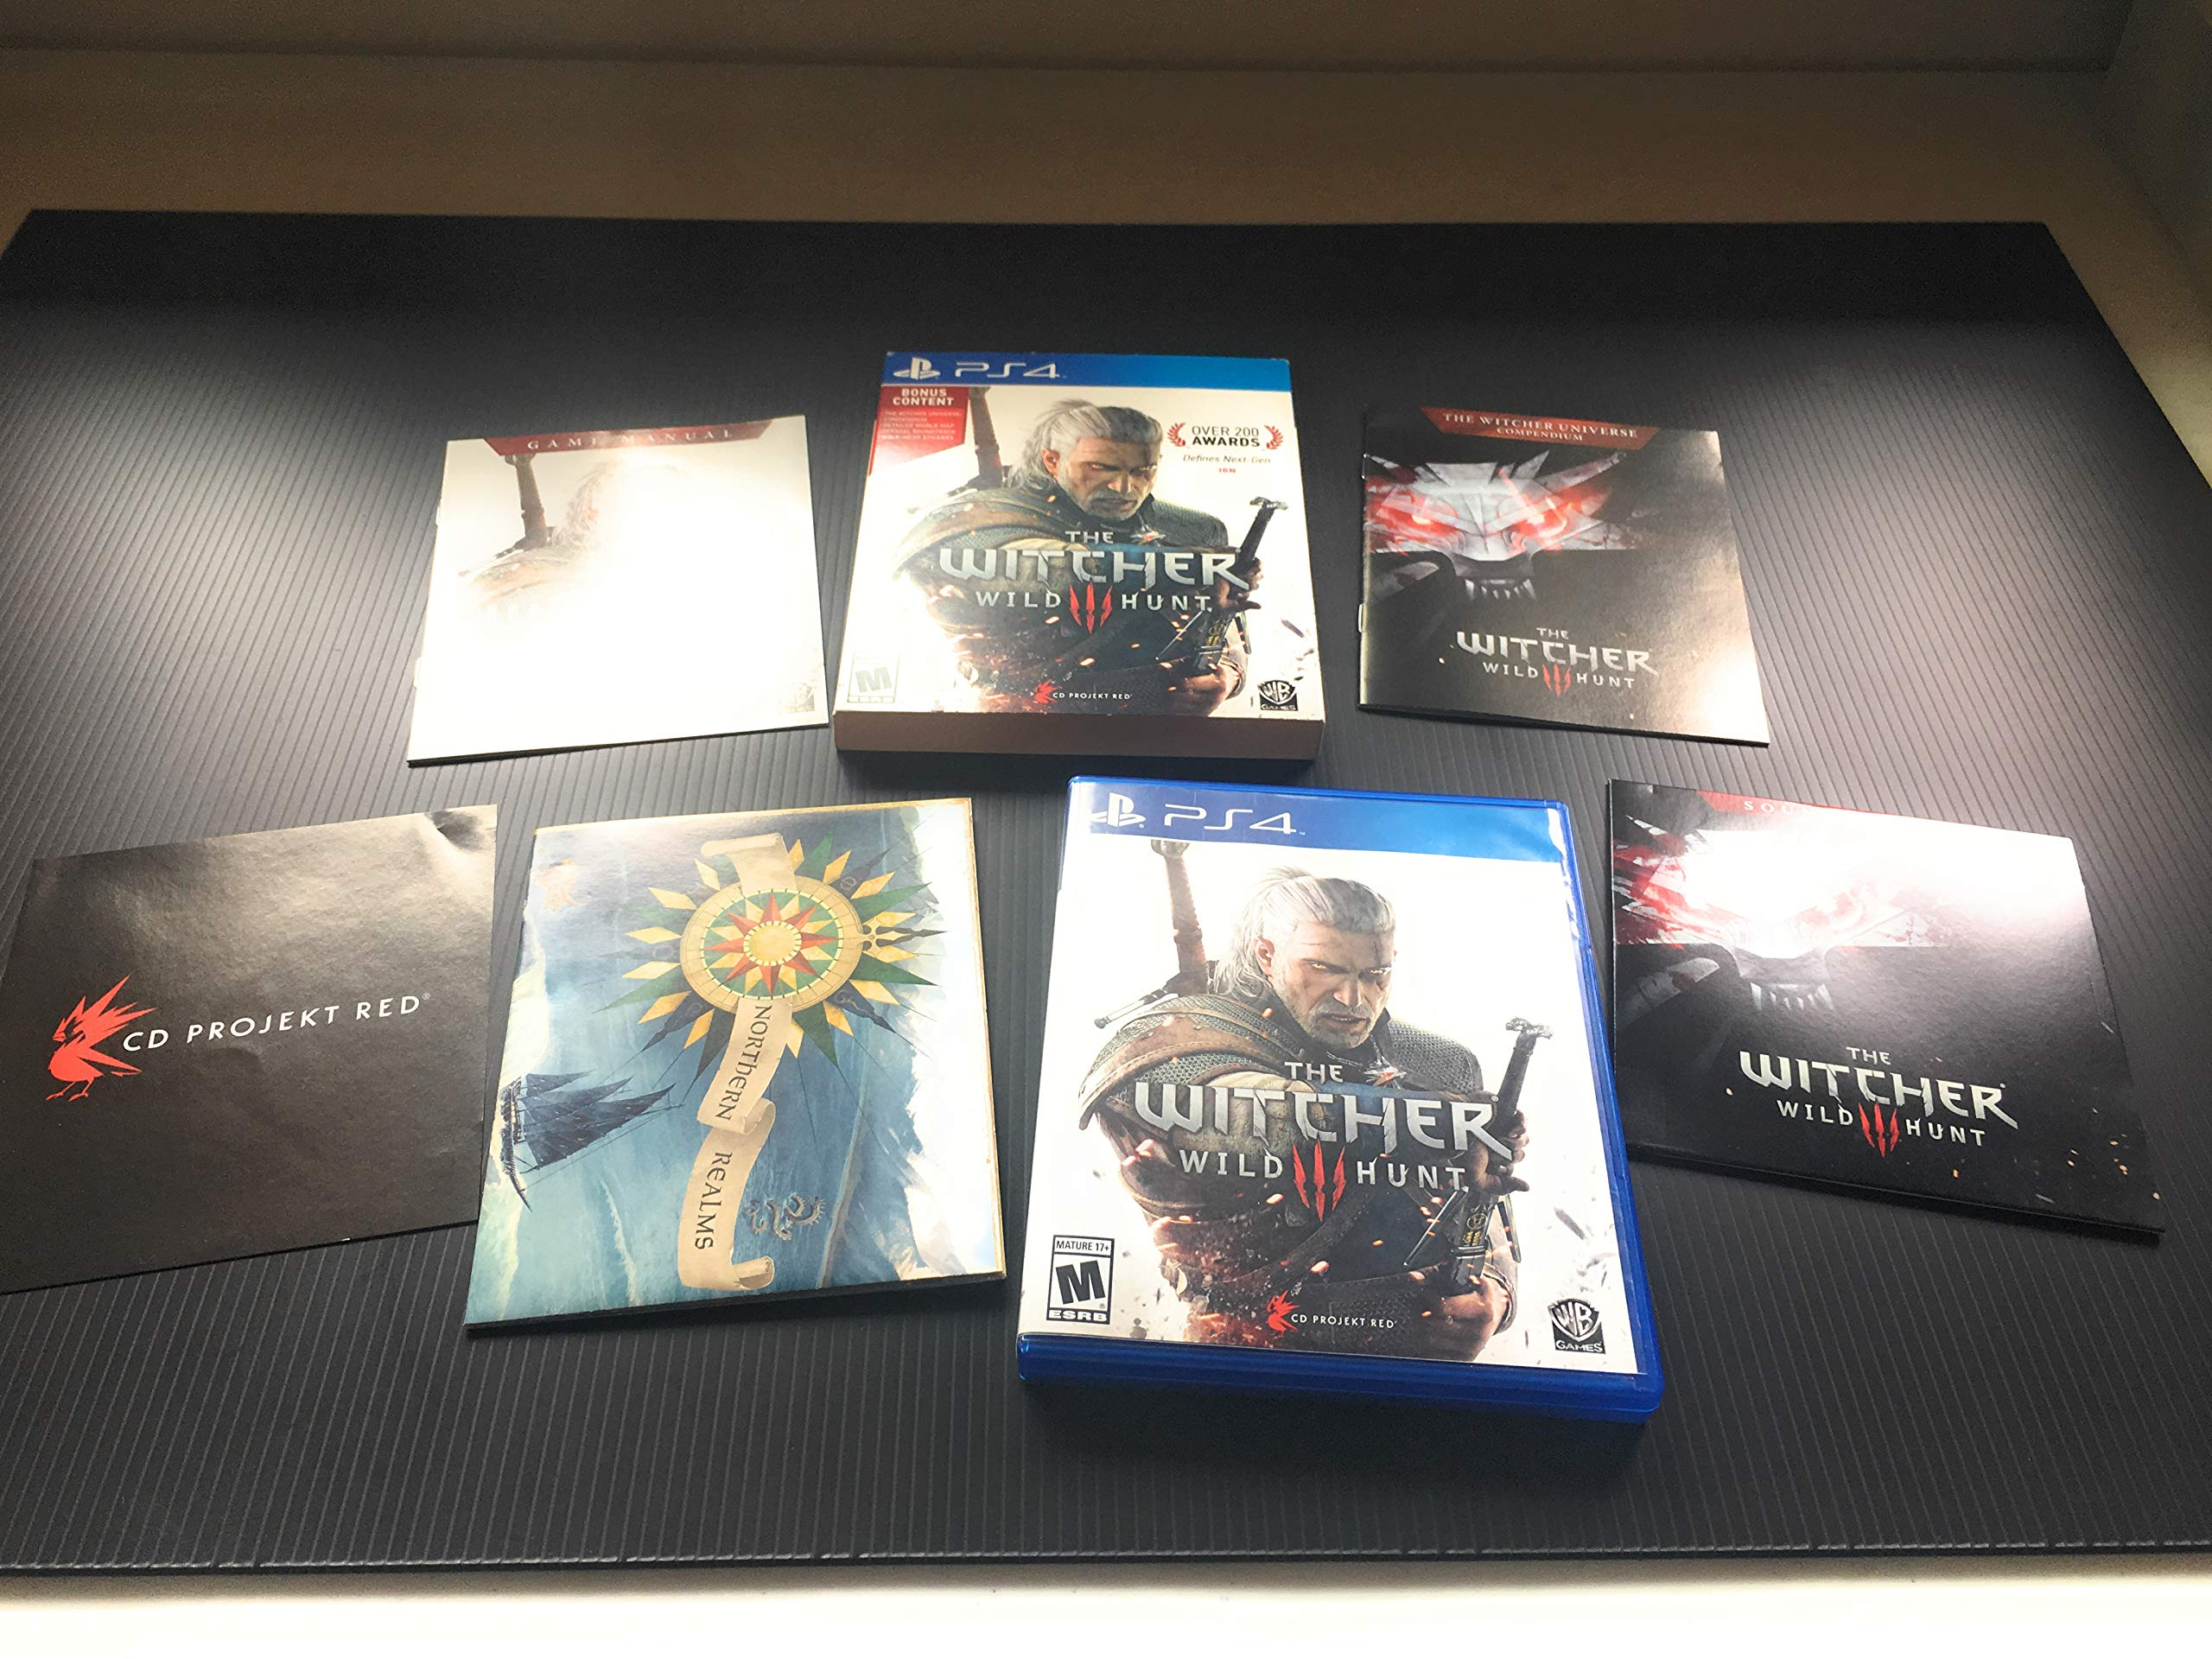 Amazon.com: The Witcher 3: Wild Hunt - PlayStation 4: Video ...